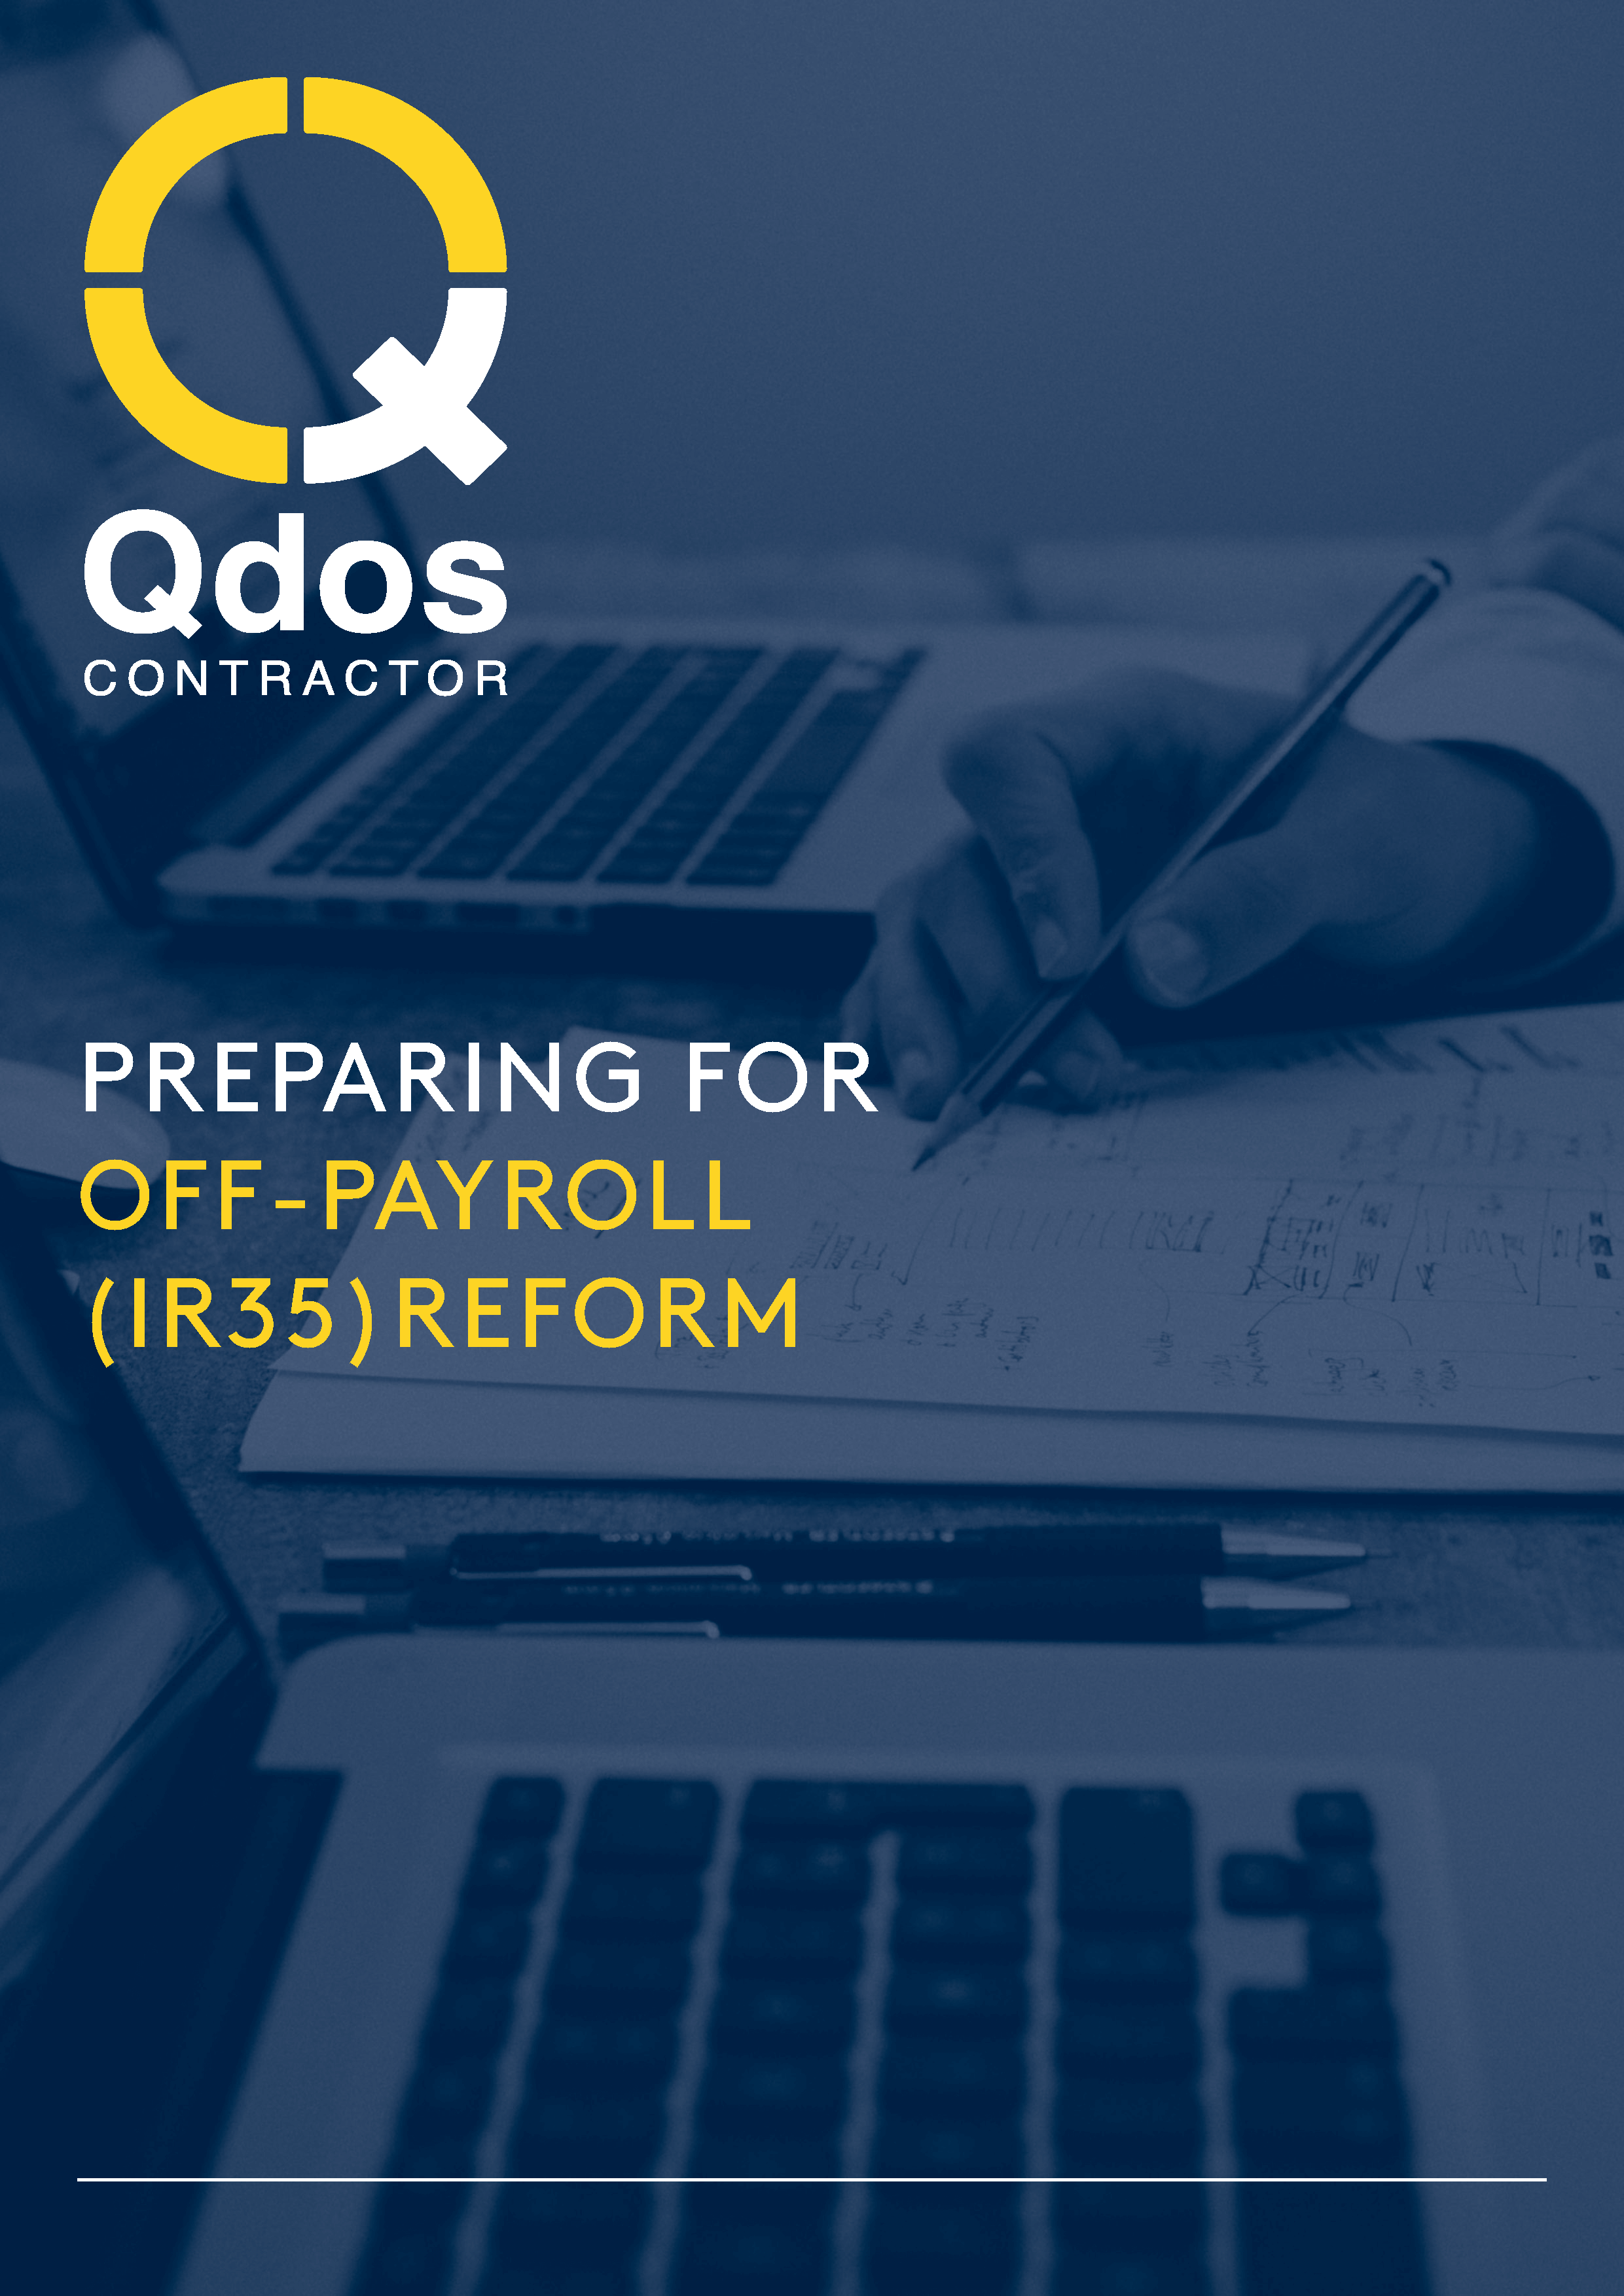 Preparing for IR35 reform